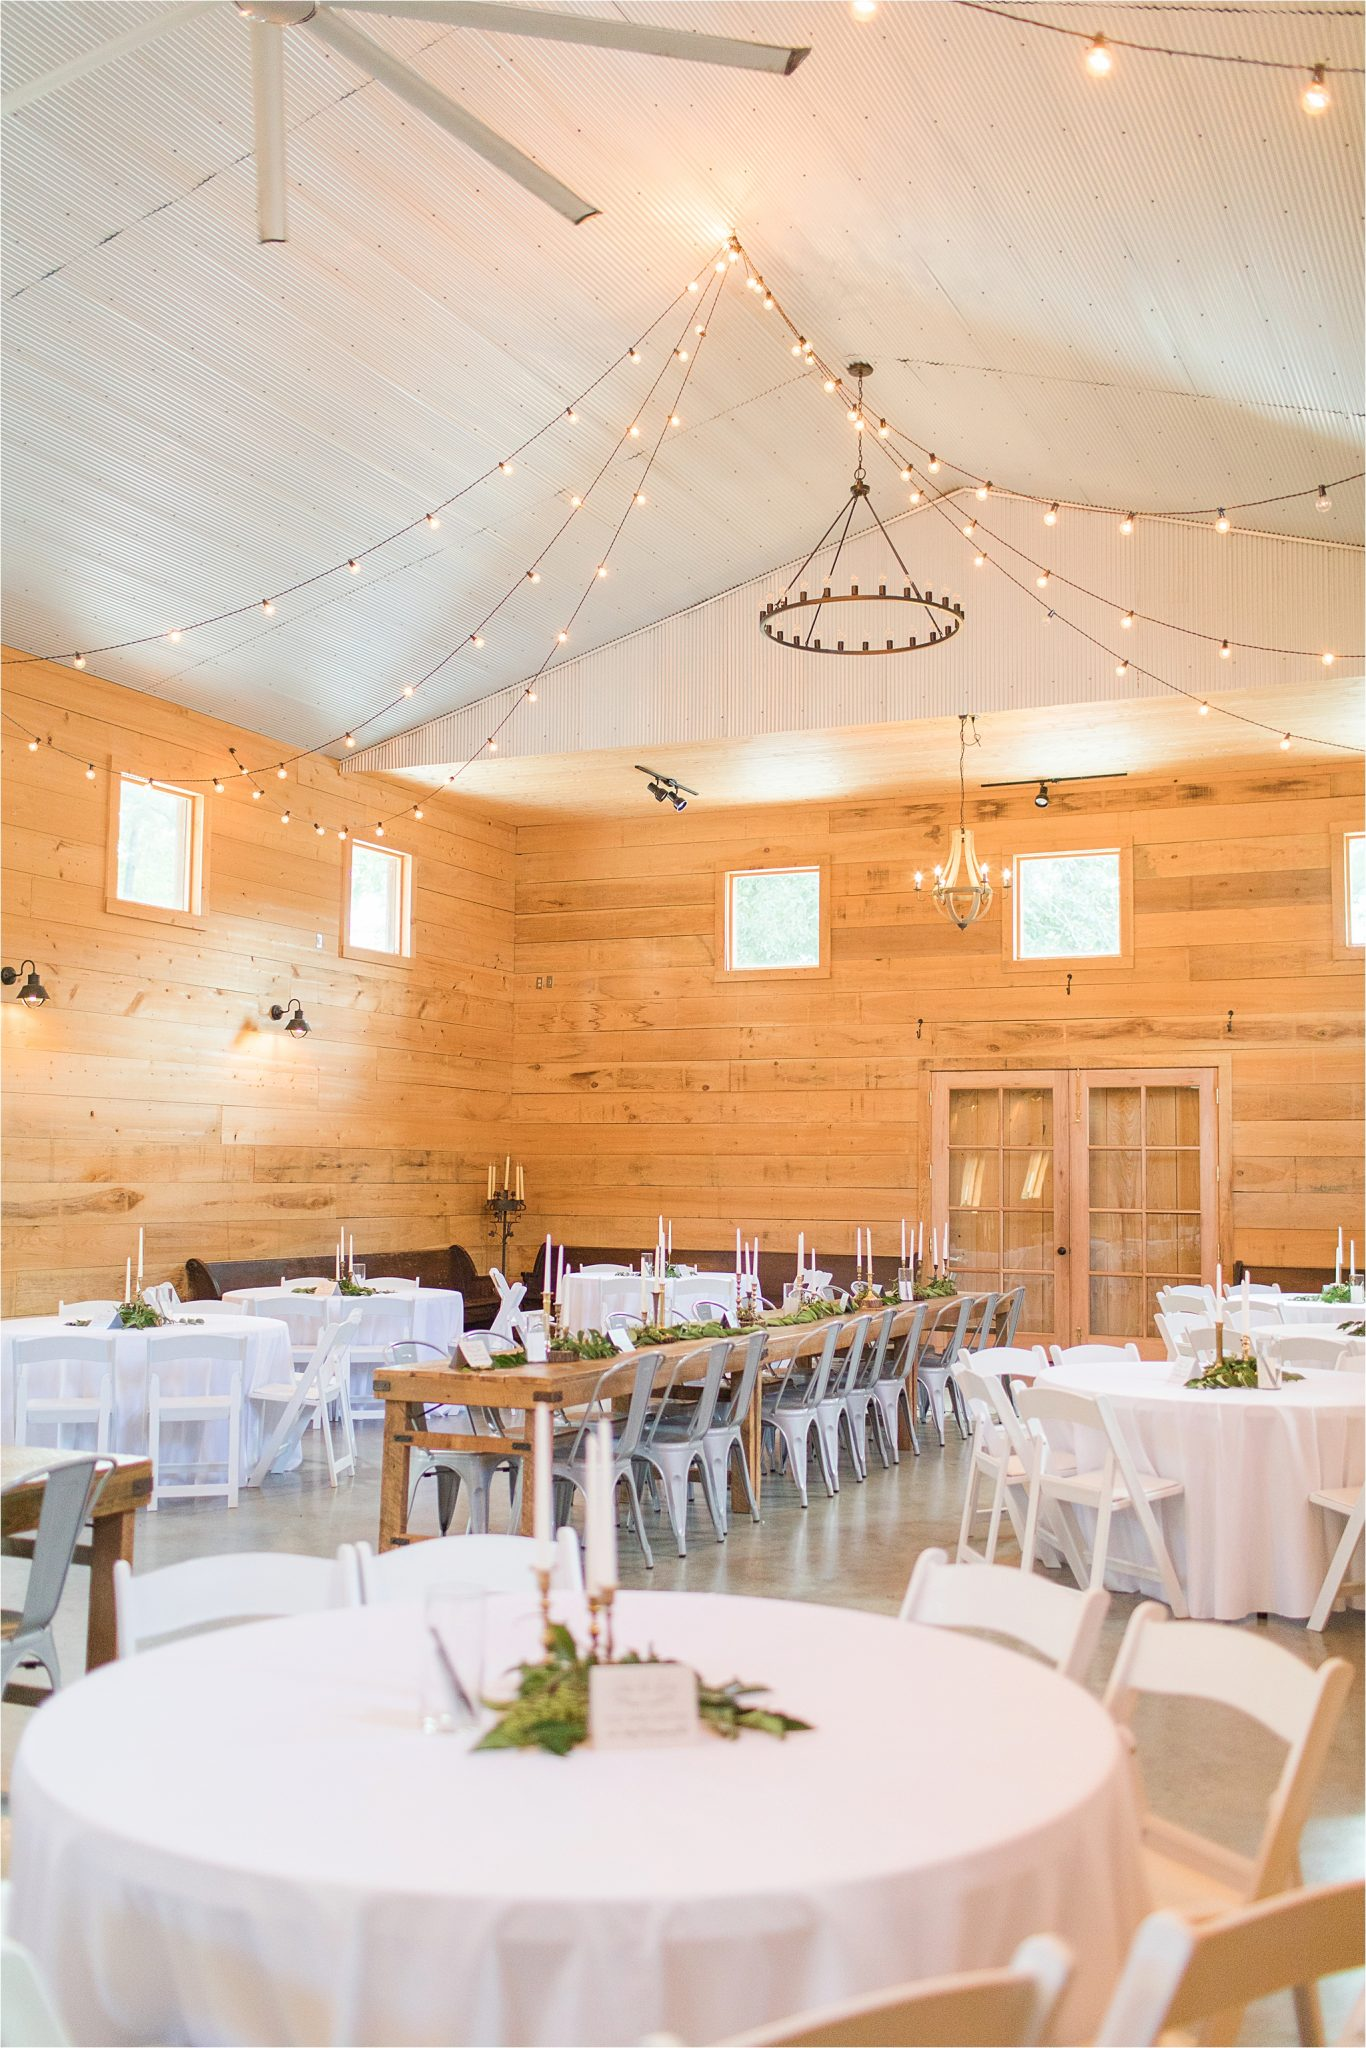 wedding-reception-alabama-venue-barn-hanging-lights-tables